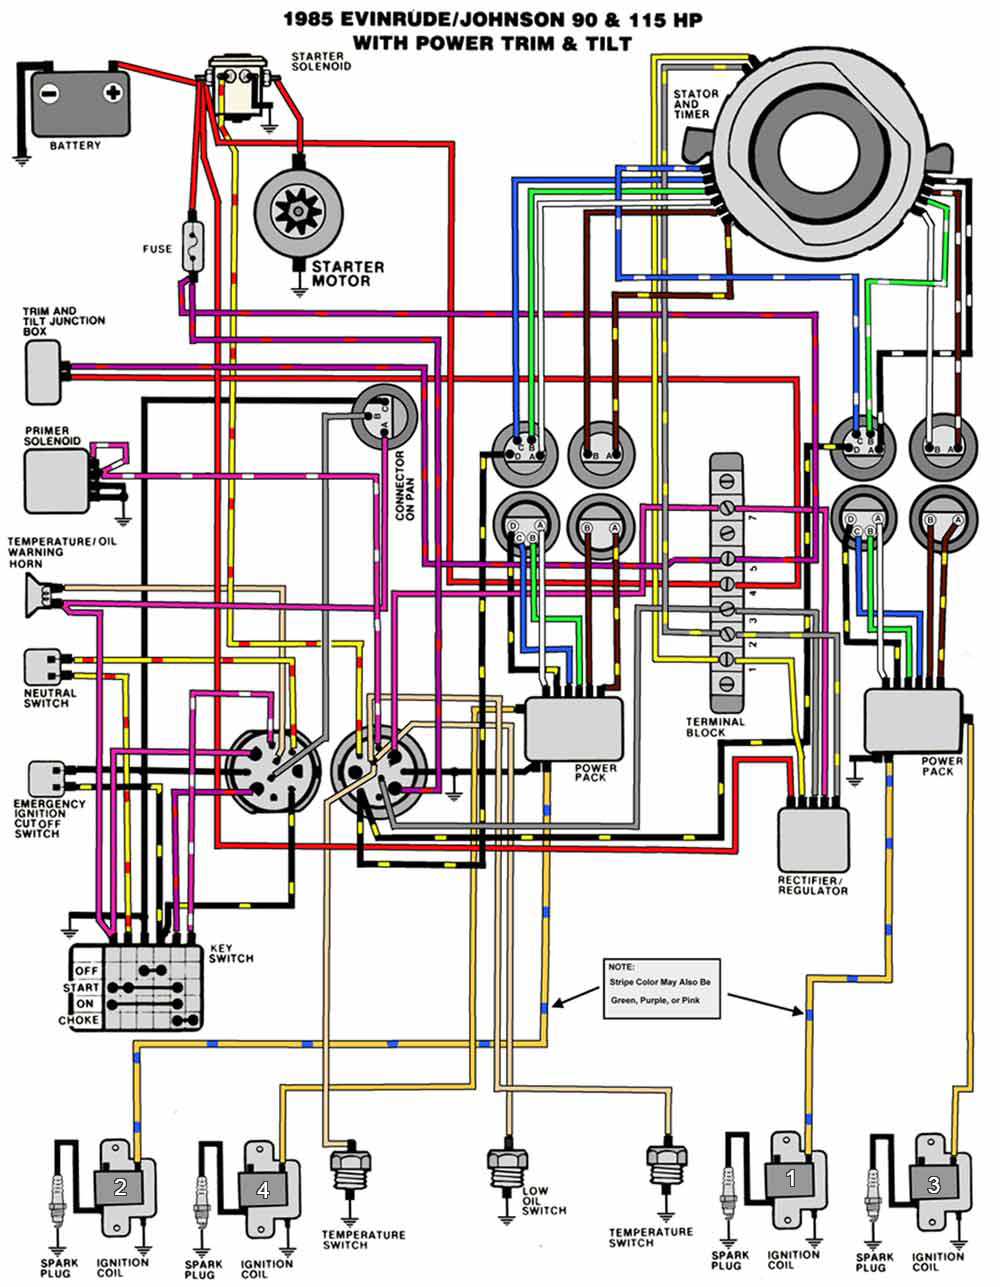 1985_90_115TnT mastertech marine evinrude johnson outboard wiring diagrams  at creativeand.co